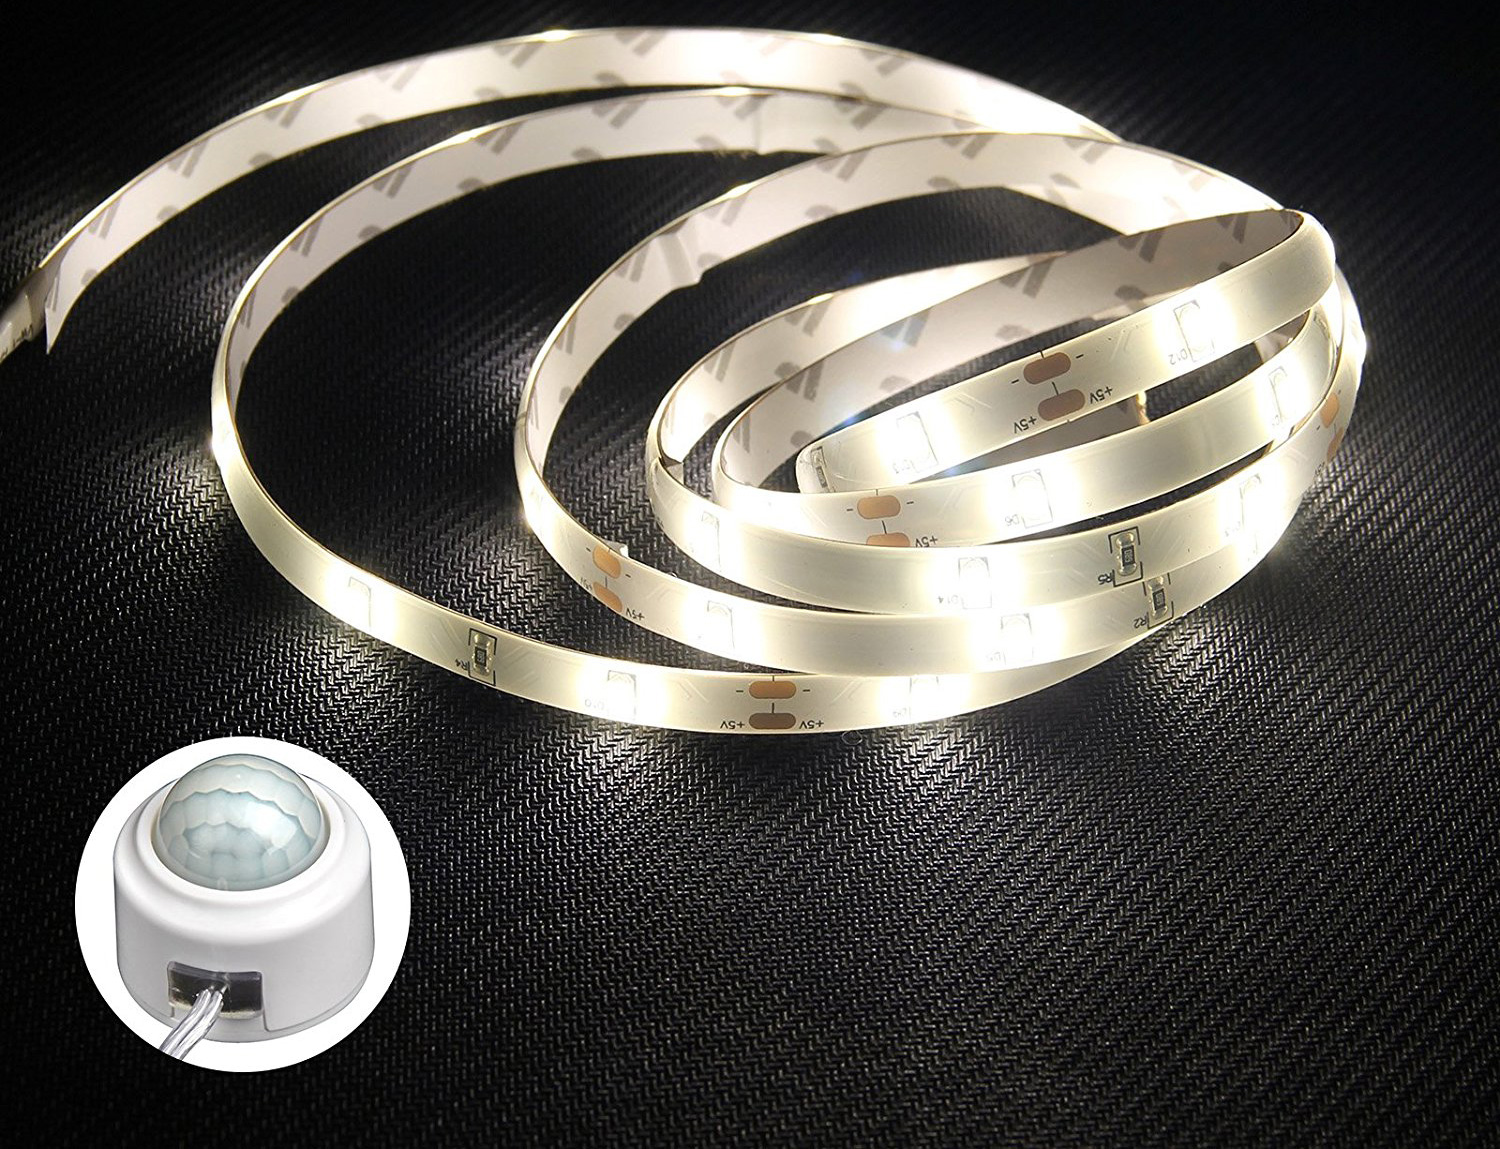 lopoo motion sensing led strip light review review other products xsreviews. Black Bedroom Furniture Sets. Home Design Ideas